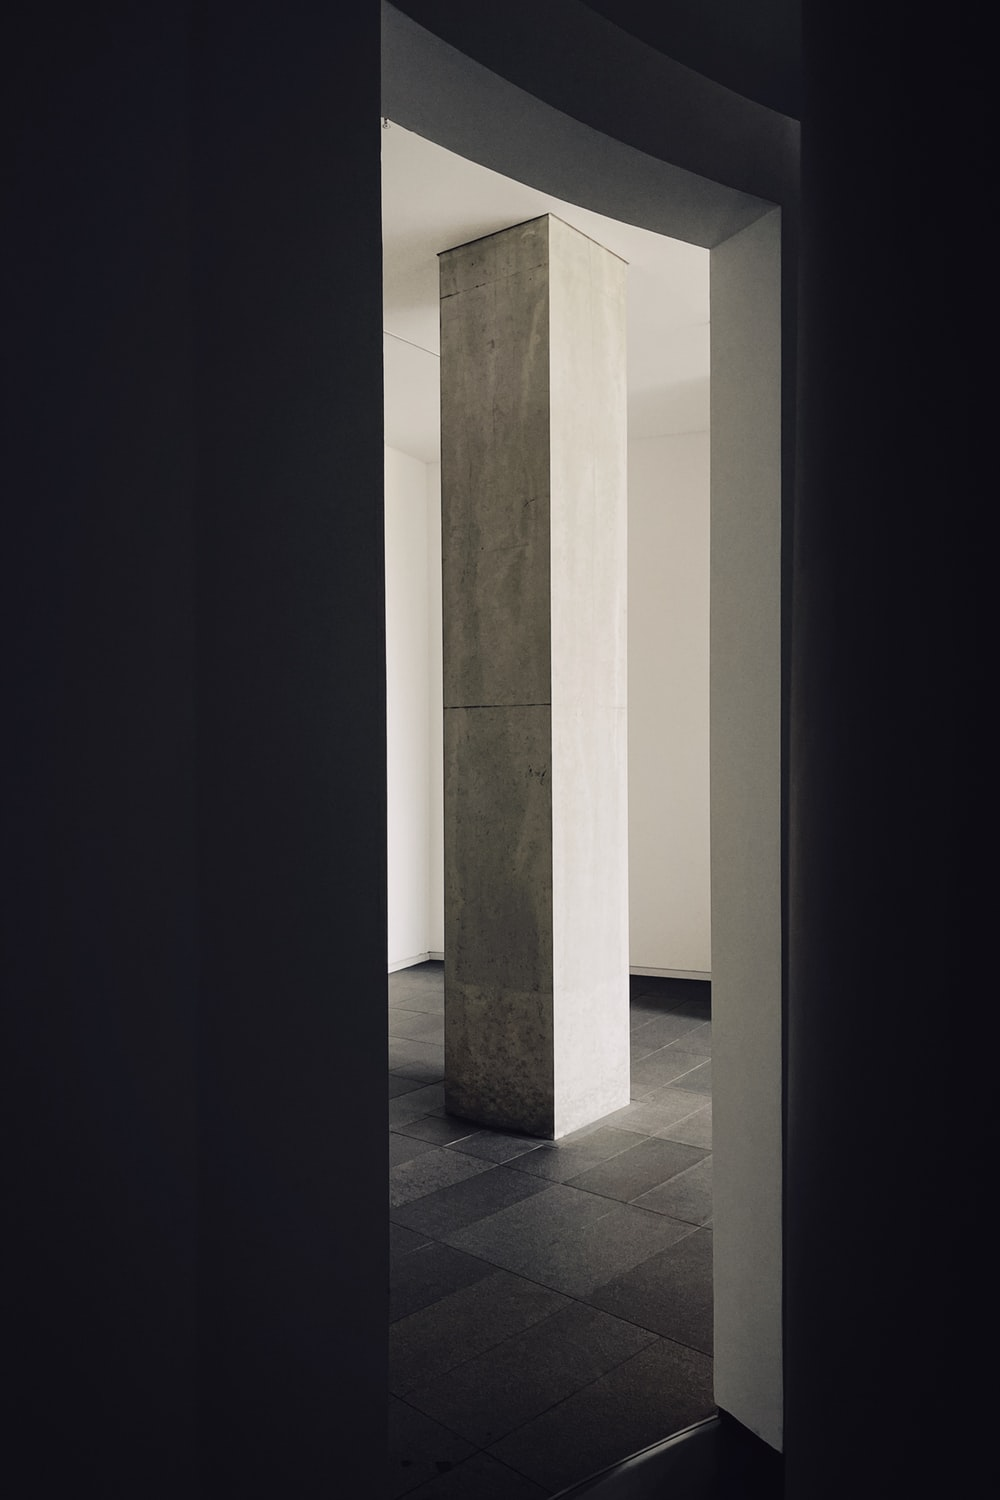 white and gray tiled hallway